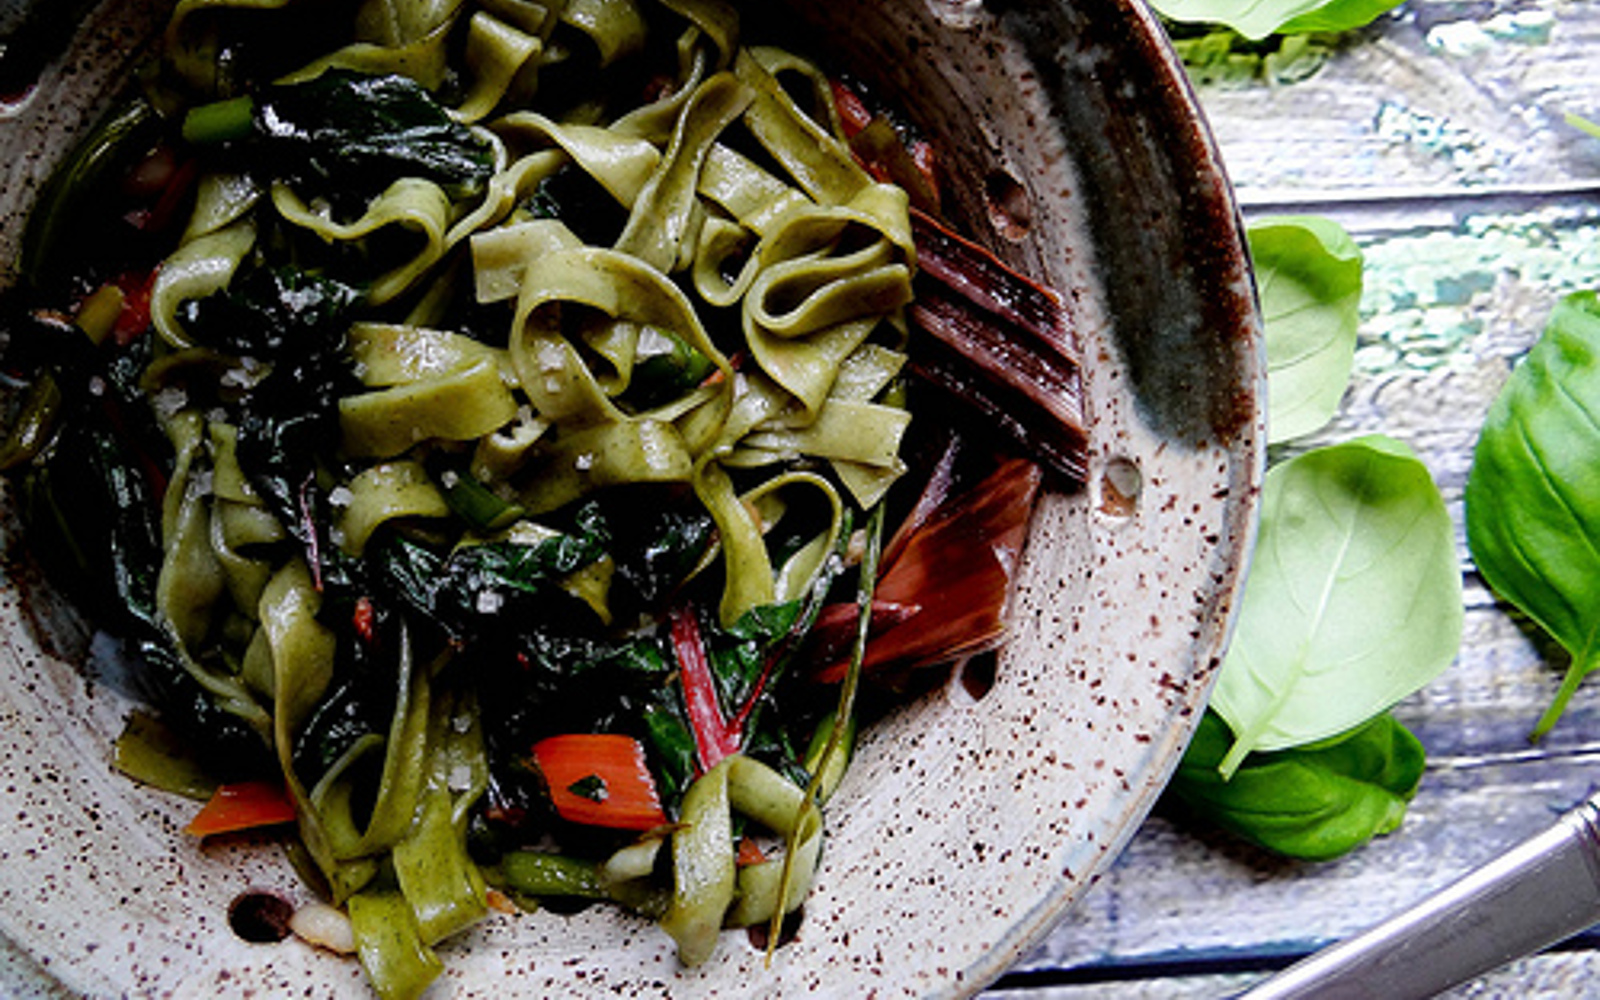 Rainbow Chard and Garlic Scape Fettuccine